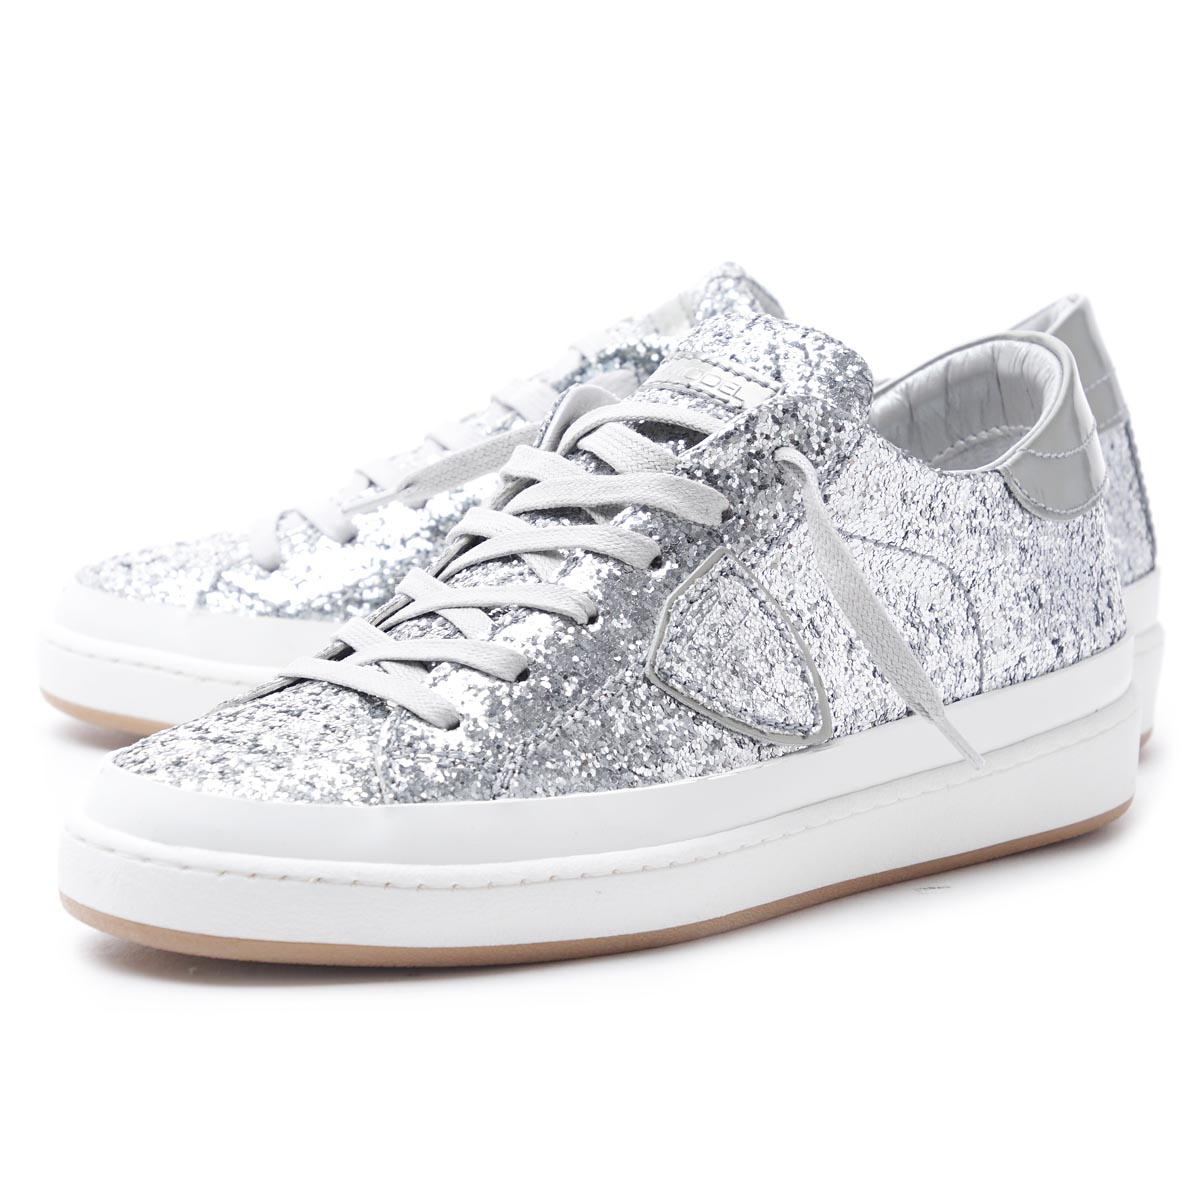 Philippe model Glitter detail sneakers Free Shipping 2018 New H6RU1mtju